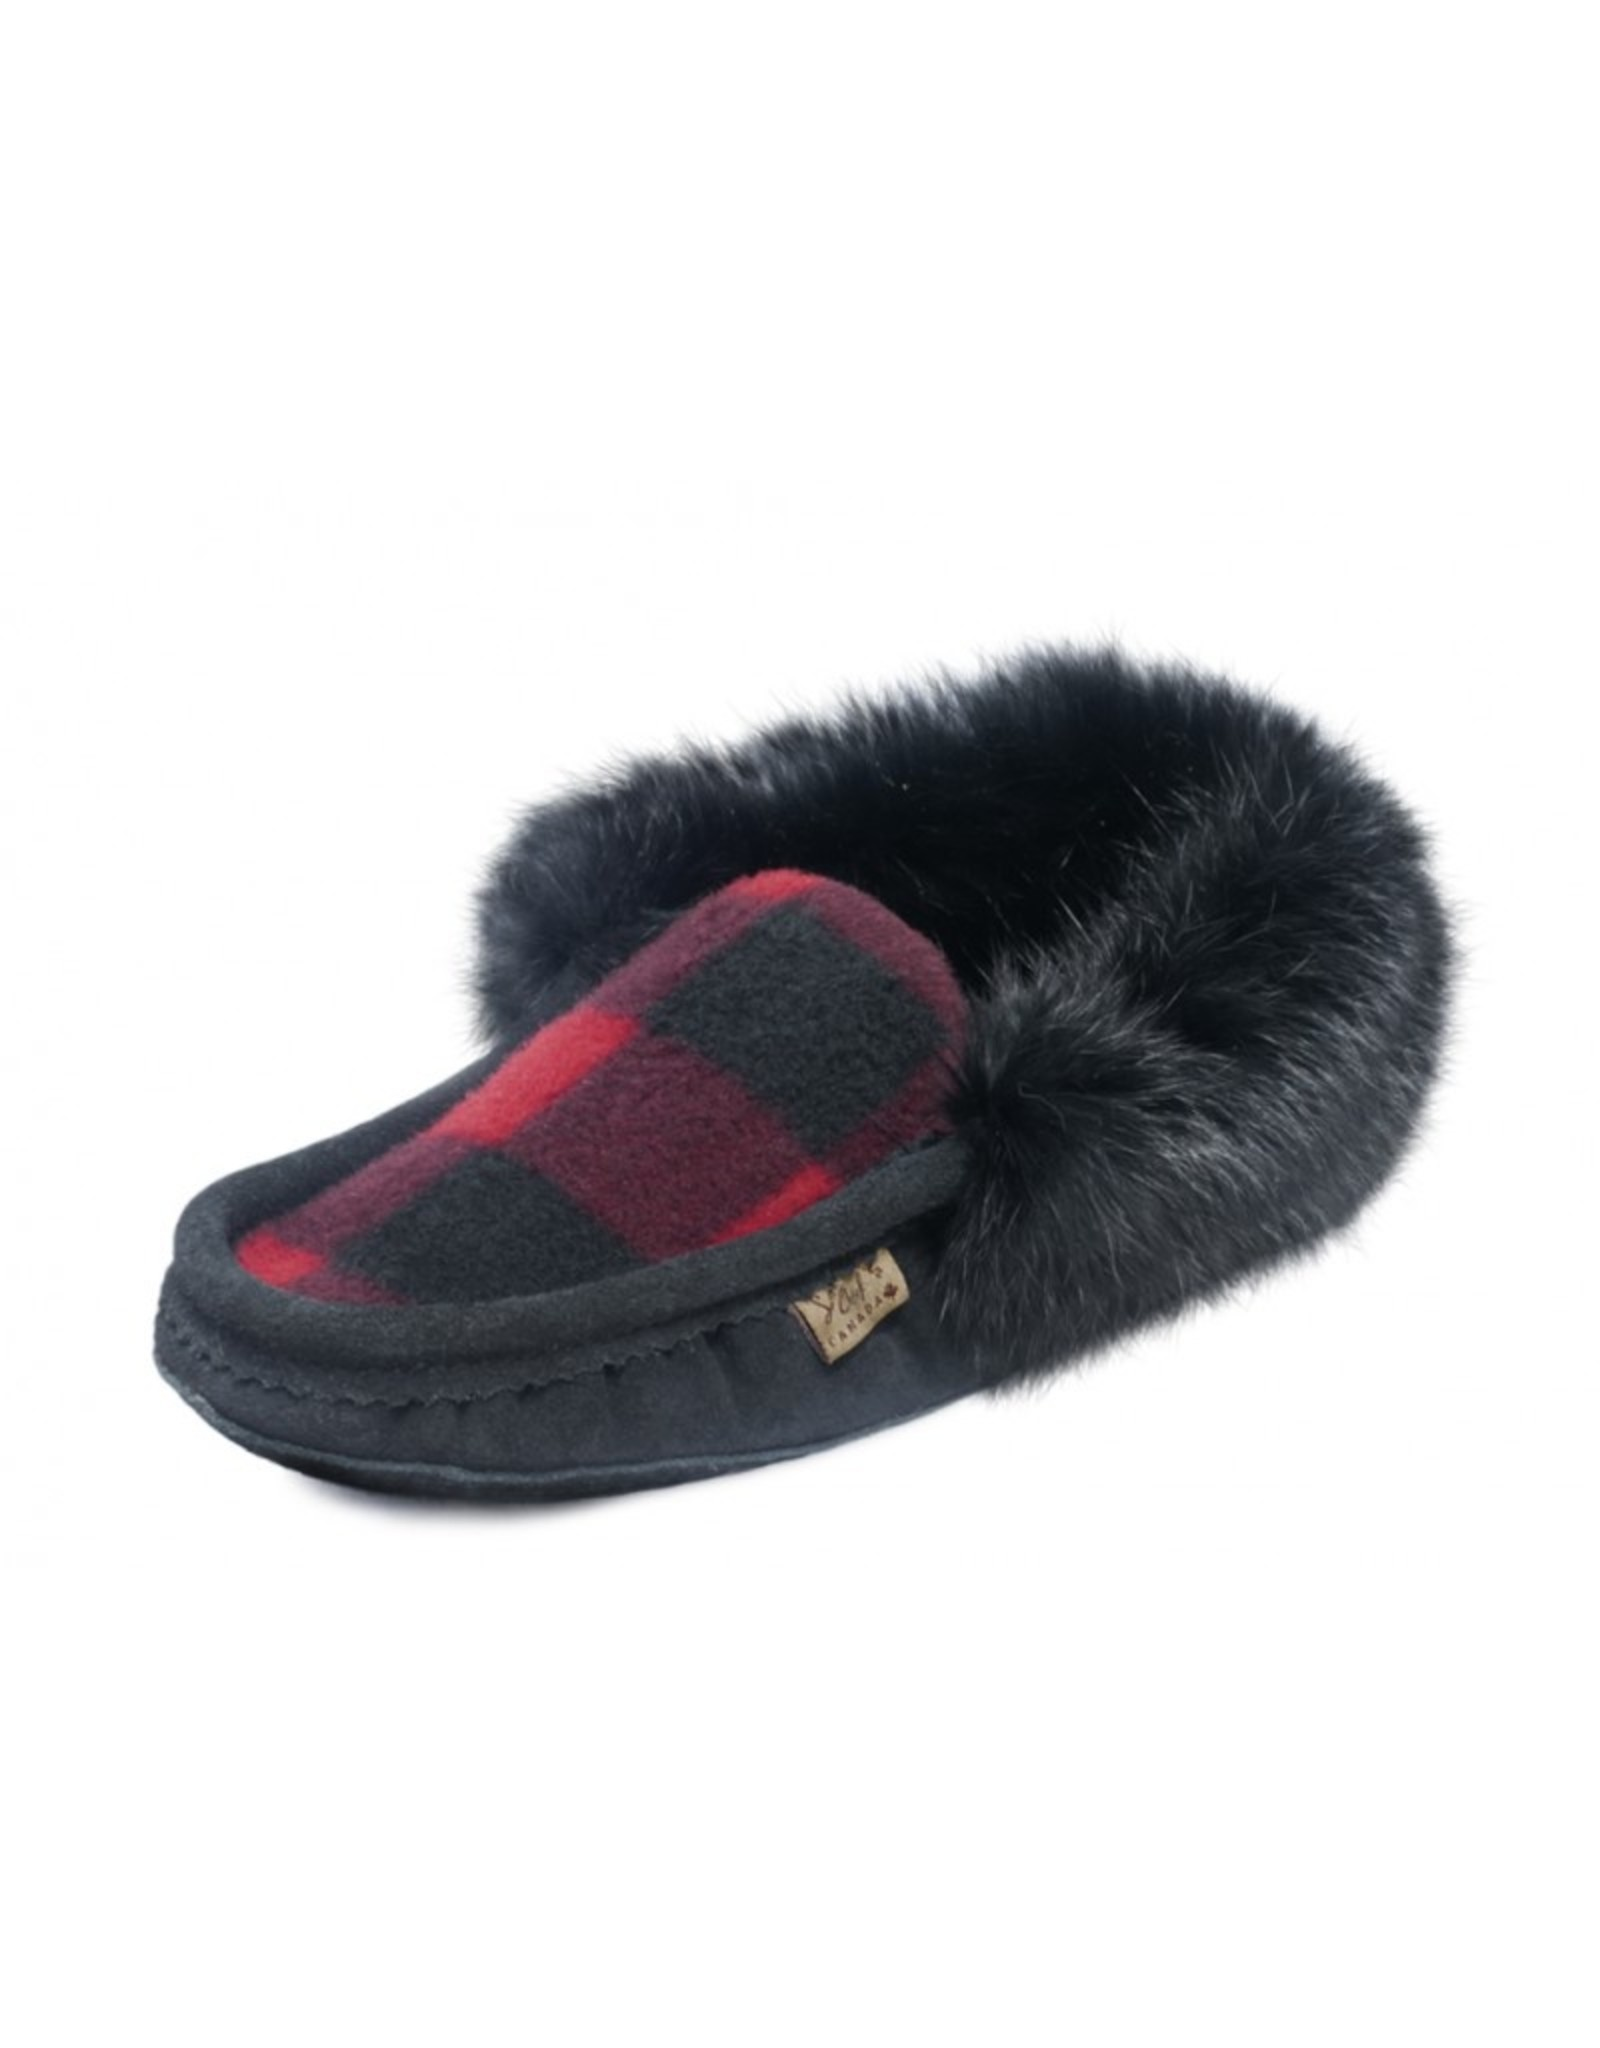 Mens Black & Red Flannel Slipper with Fur  - 604BLM